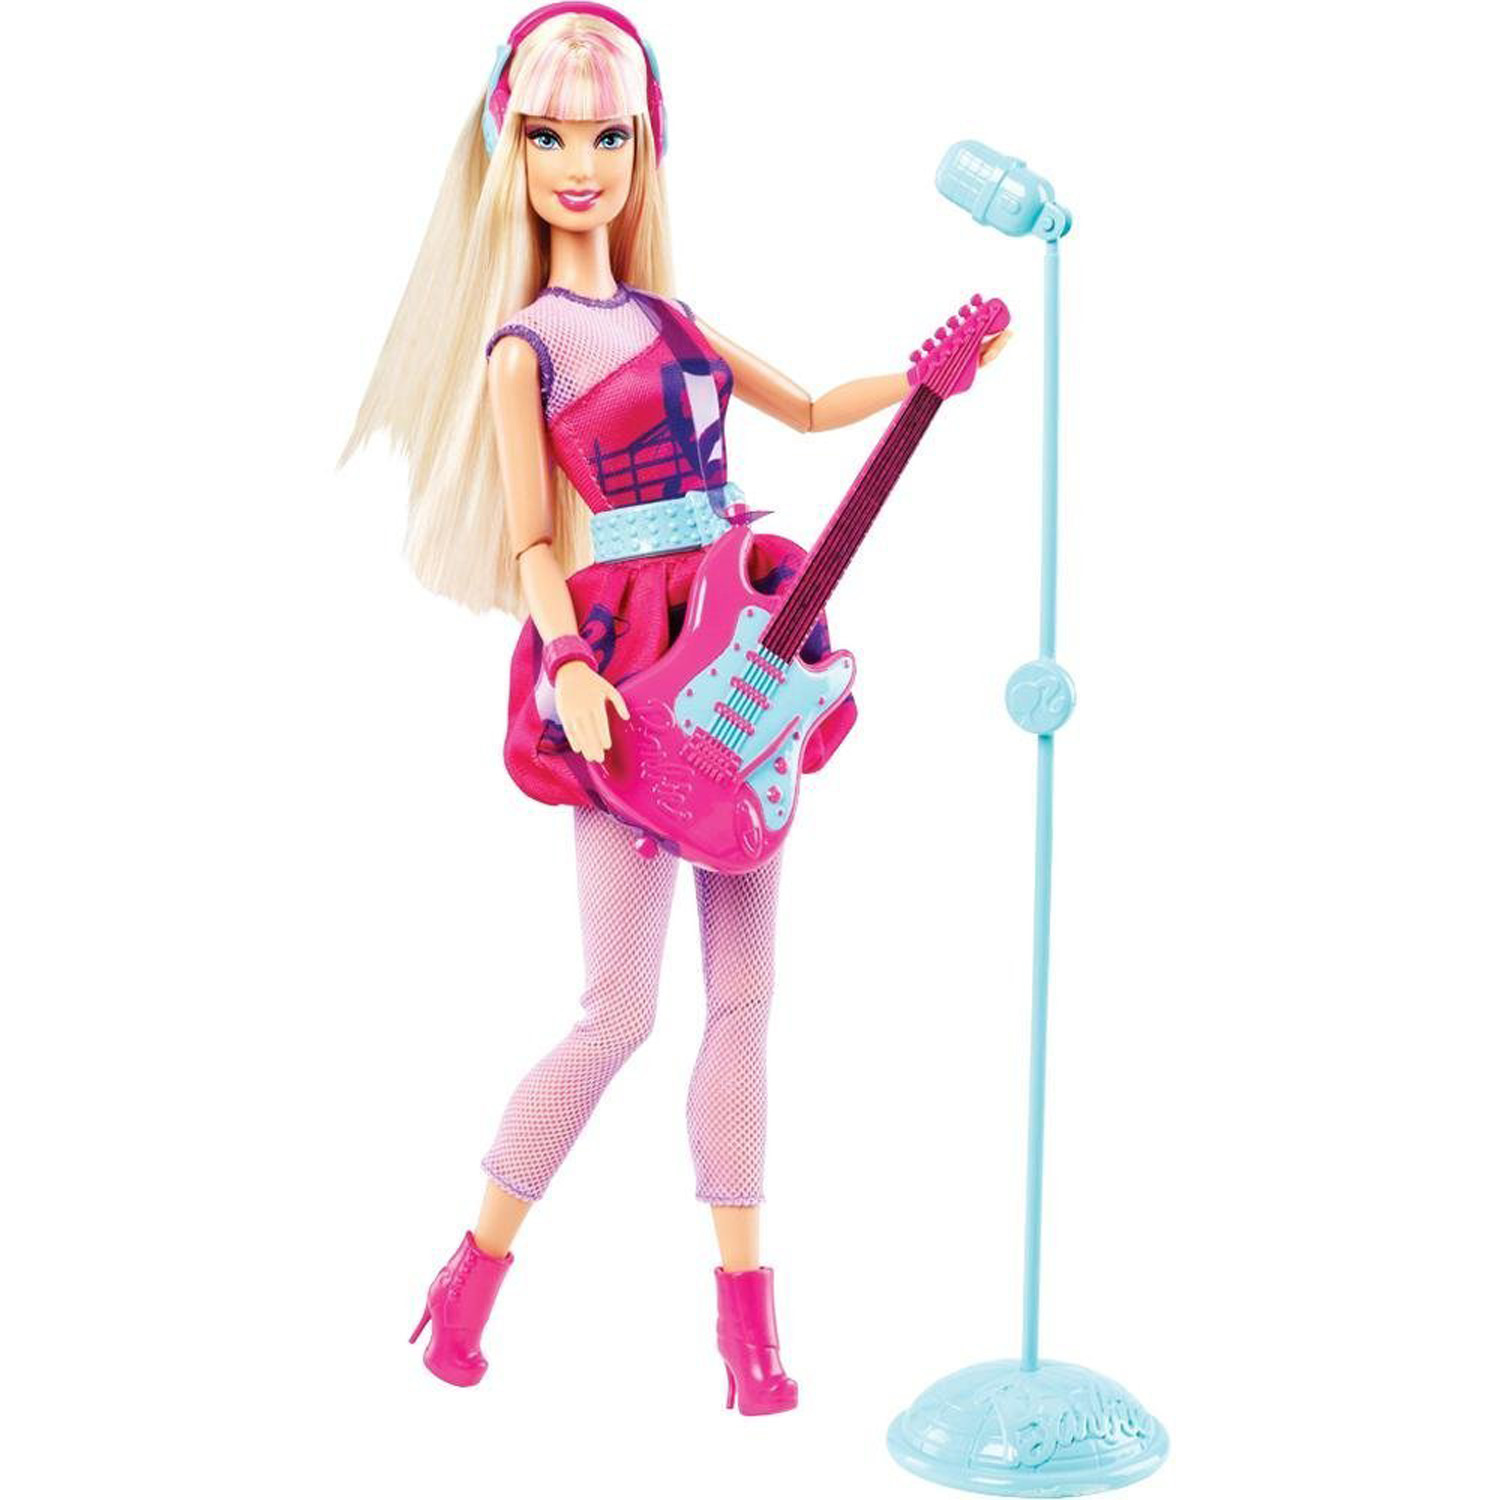 Barbie Toys - I Can Be Rock Star Doll at ToyStop